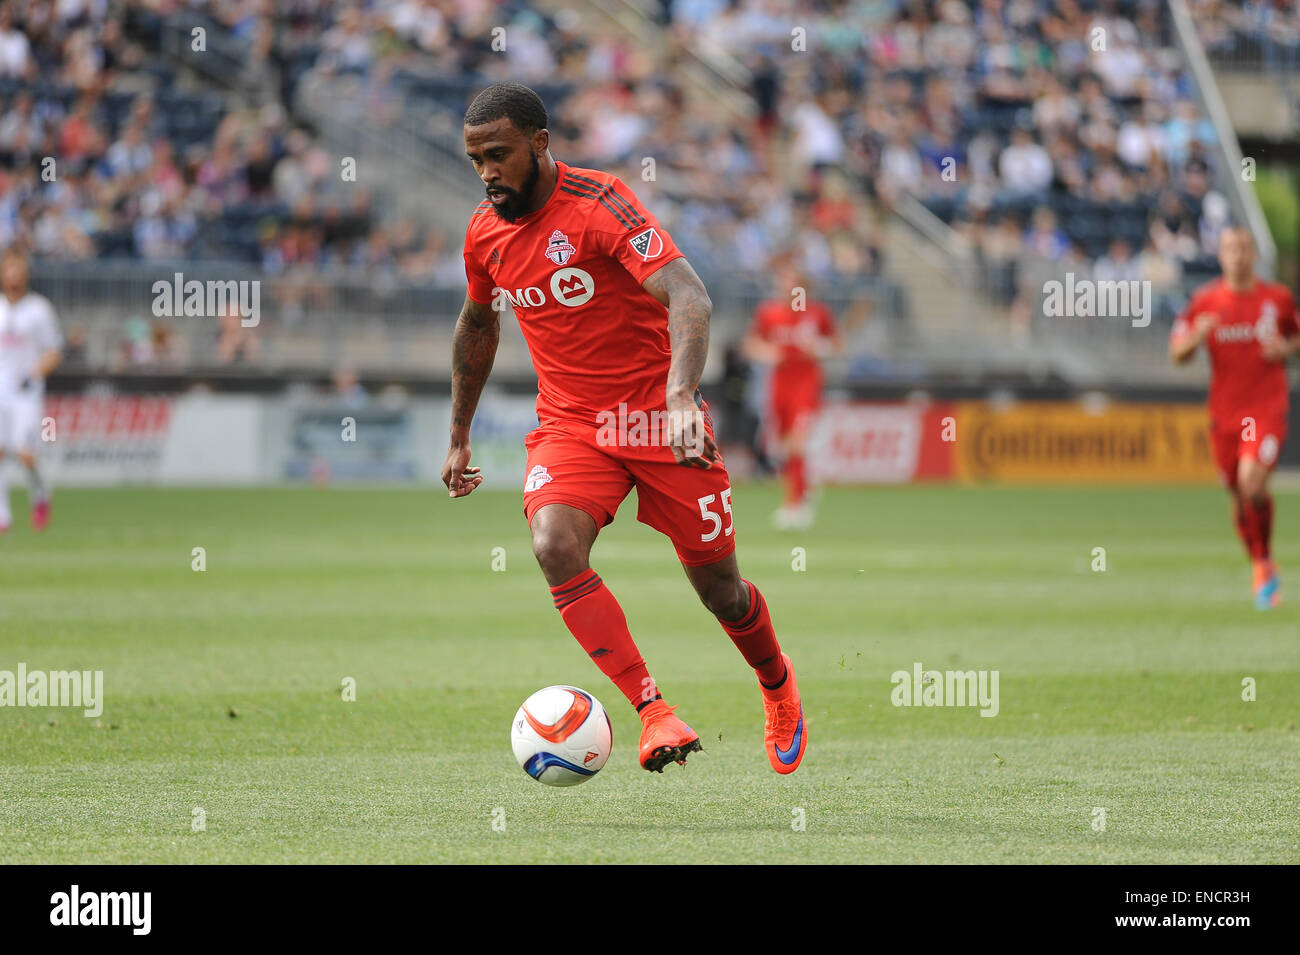 Chester, Pennsylvania, USA. 2nd May, 2015. Toronto FC forward, ROBBIE FINLEY (55), pushes the ball down the pitch Stock Photo